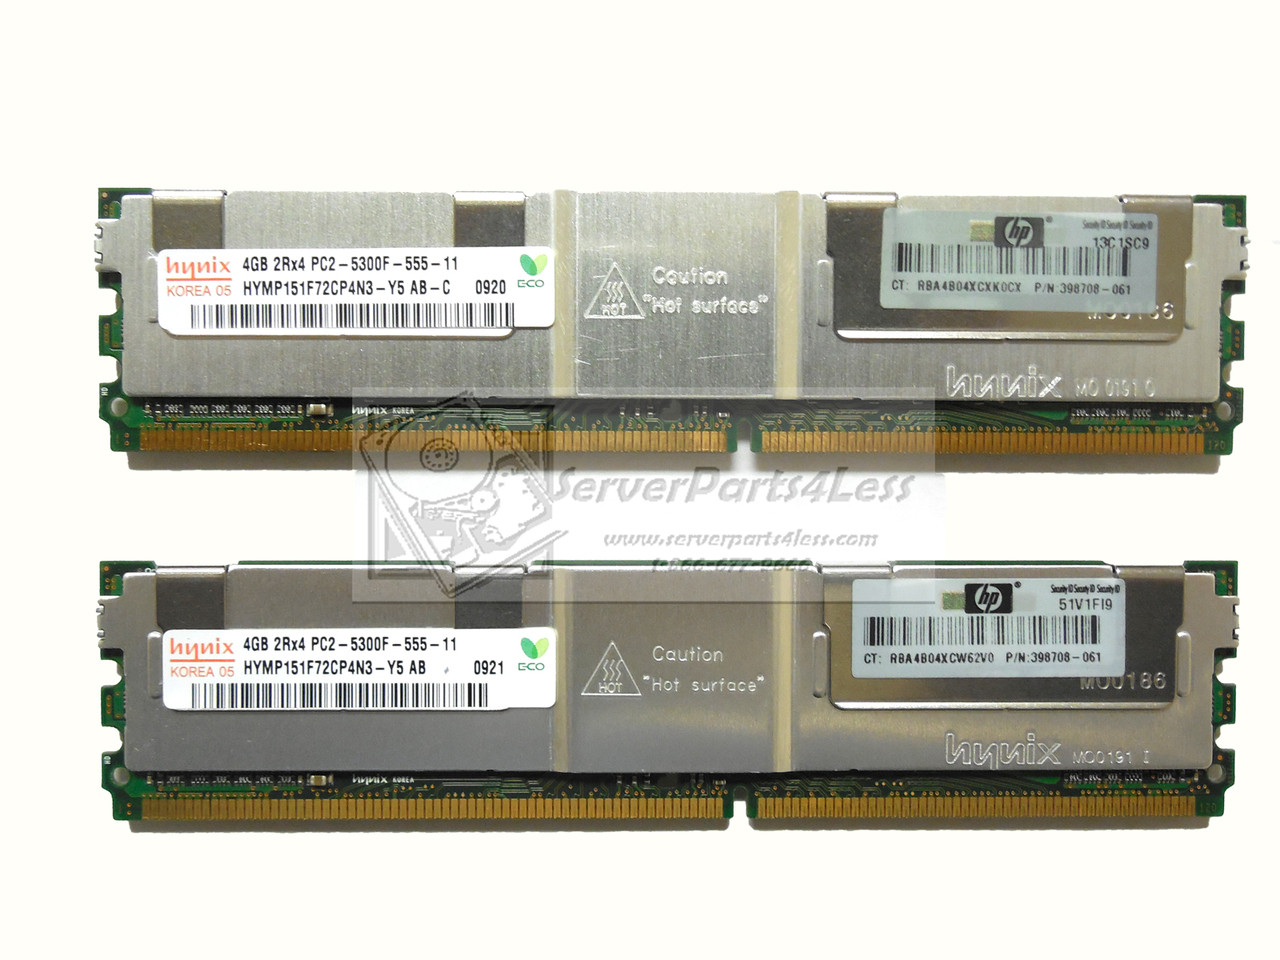 2X4GB 397415-B21 PC2-5300F DDR2 SDRAM ECC MEMORY  PROLIANT 398708-061 HP 8GB